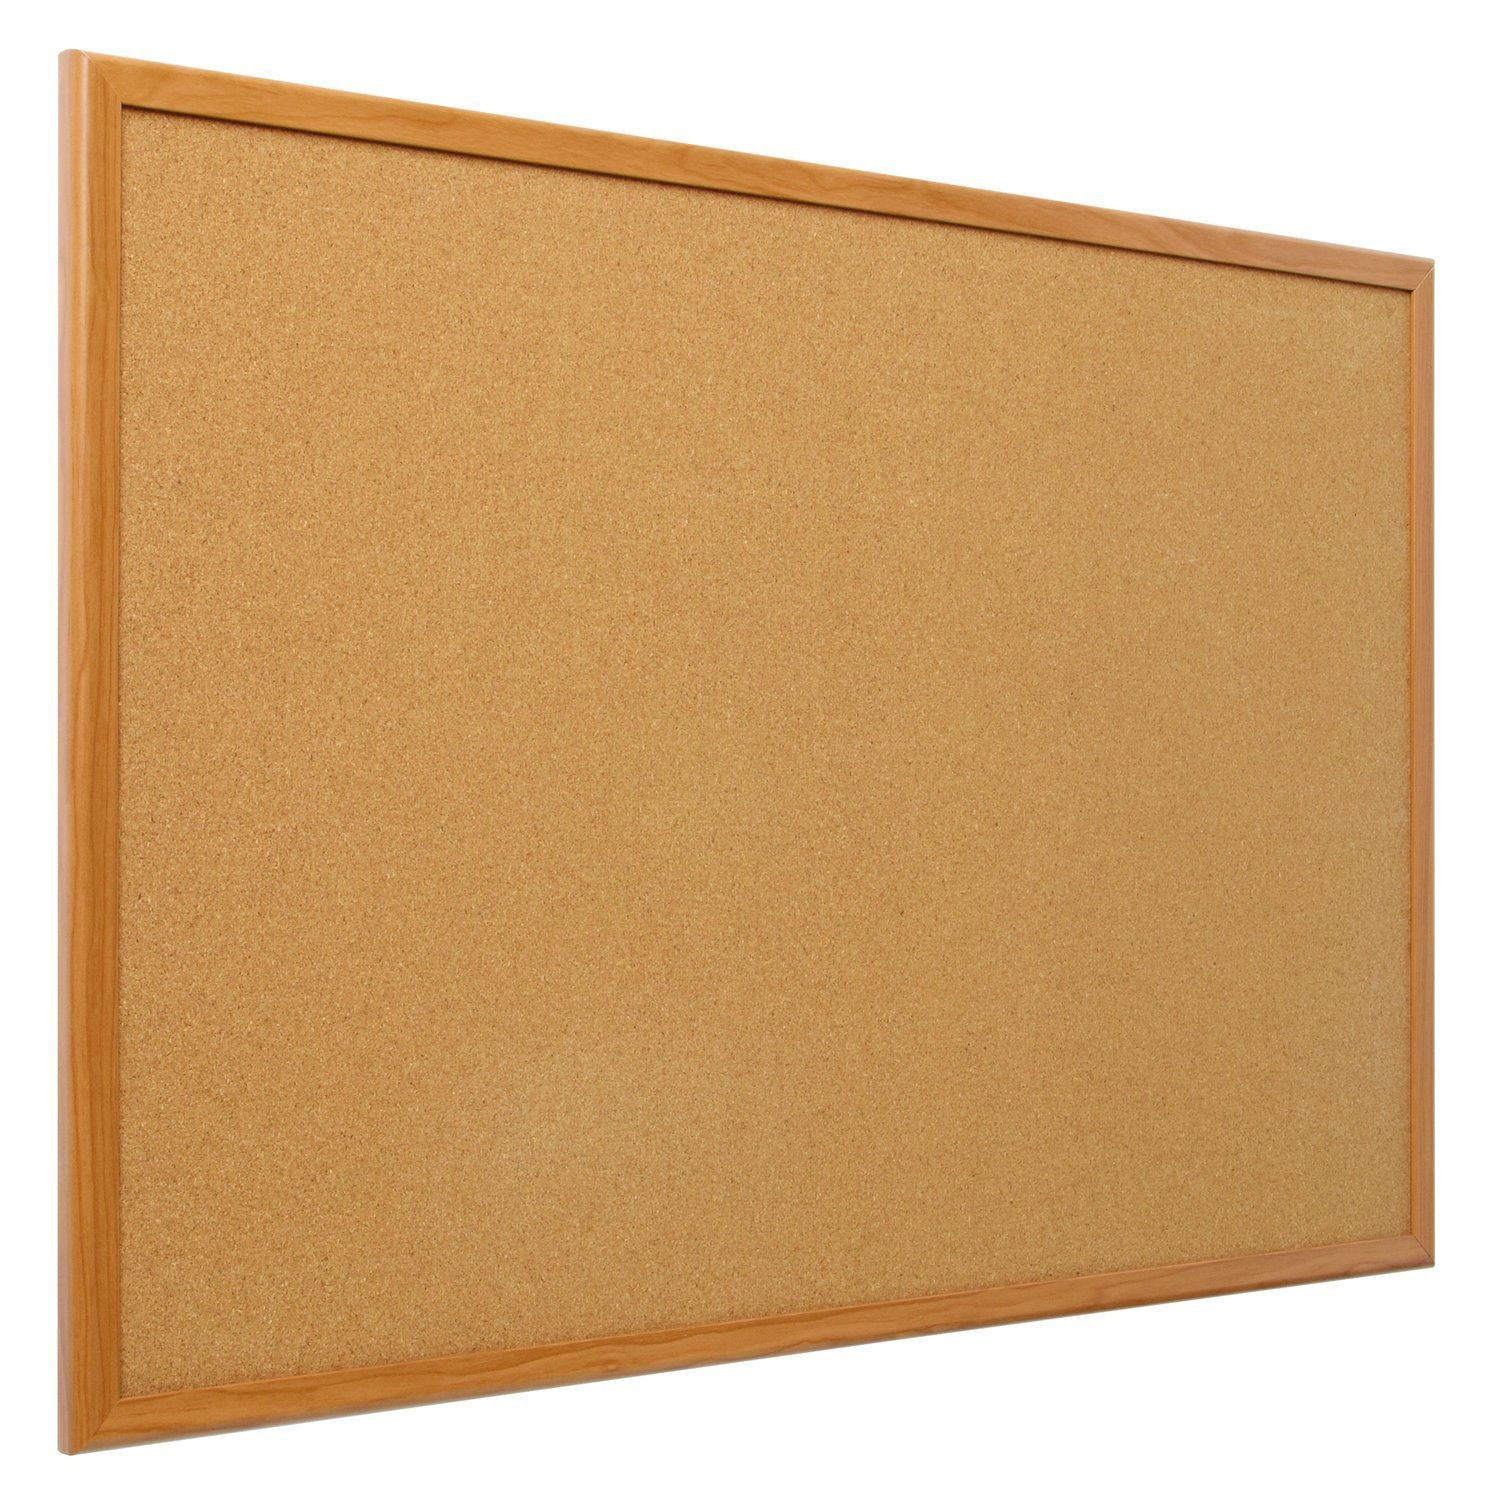 Amazoncom Quartet Bulletin Board Cork Board X Oak Wood - Us travel map on cork board